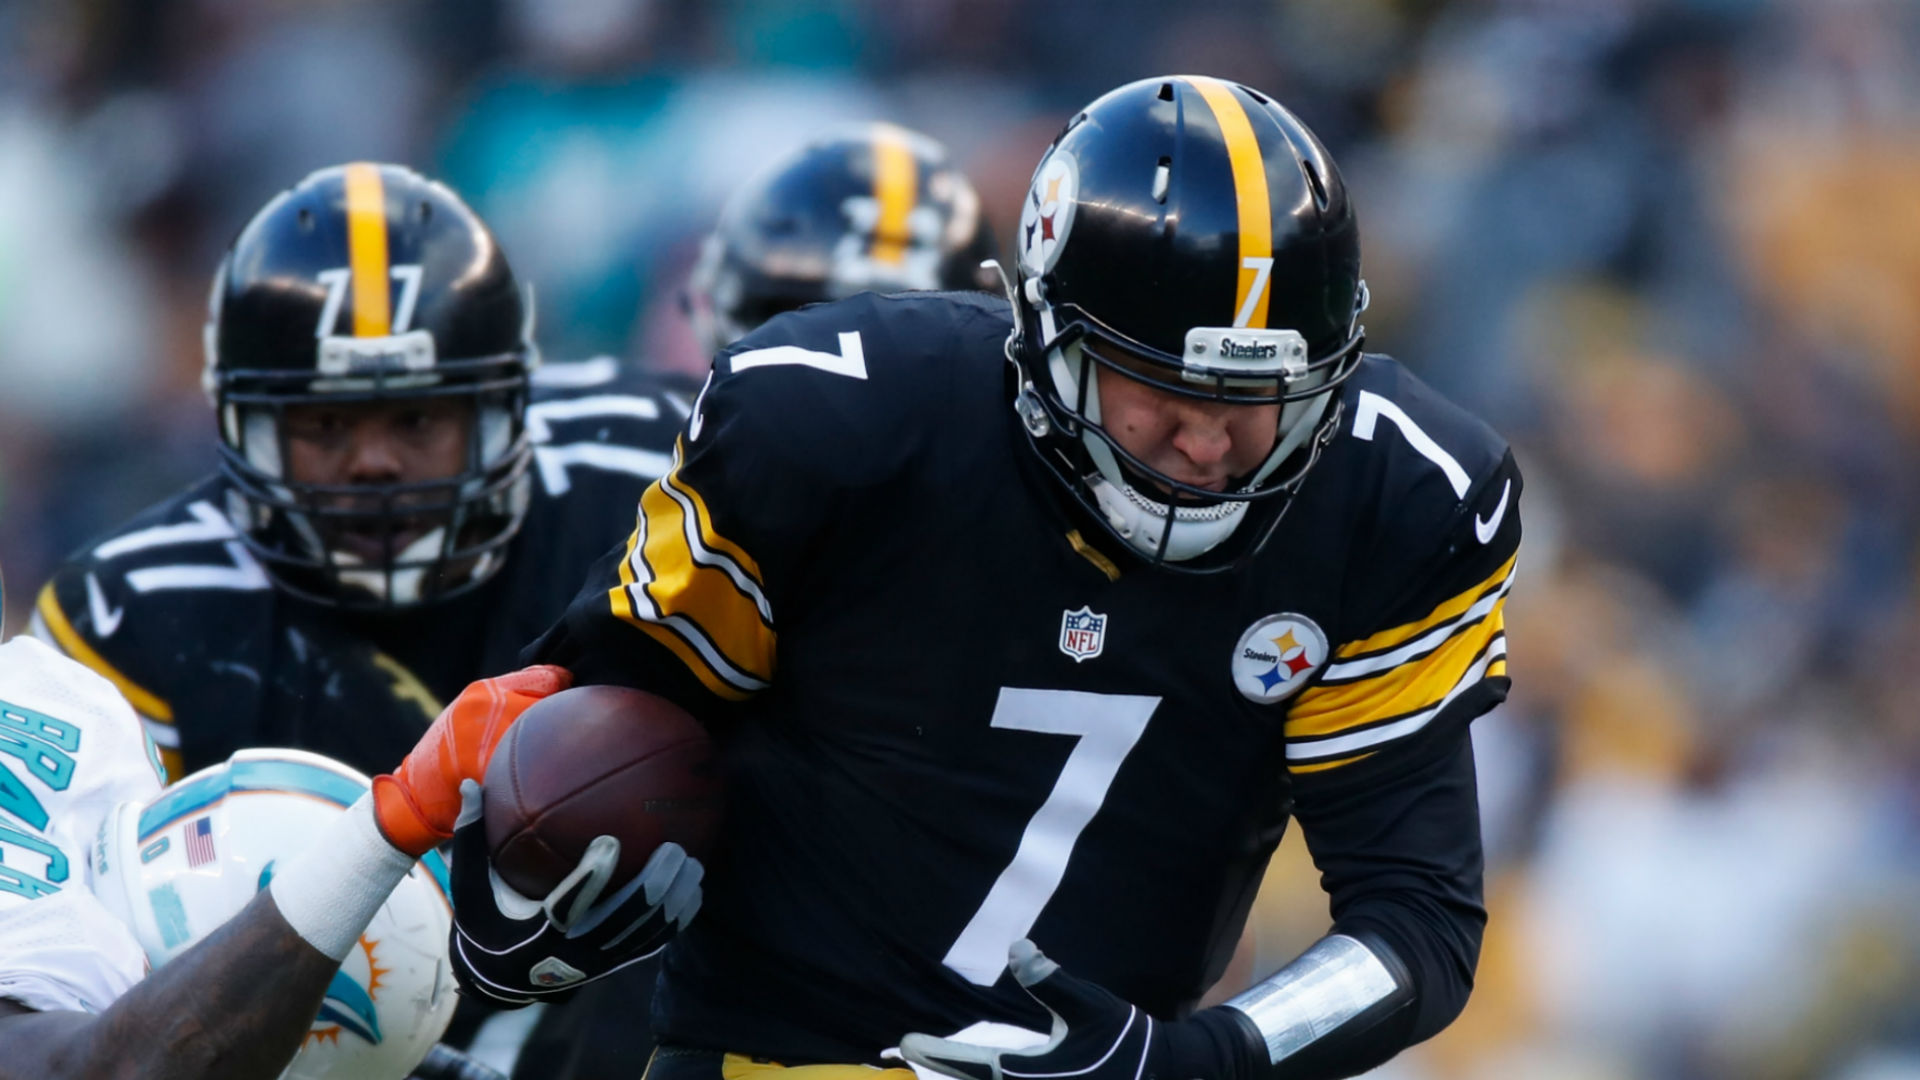 Ben Roethlisberger emerges from Steelers playoff win in walking